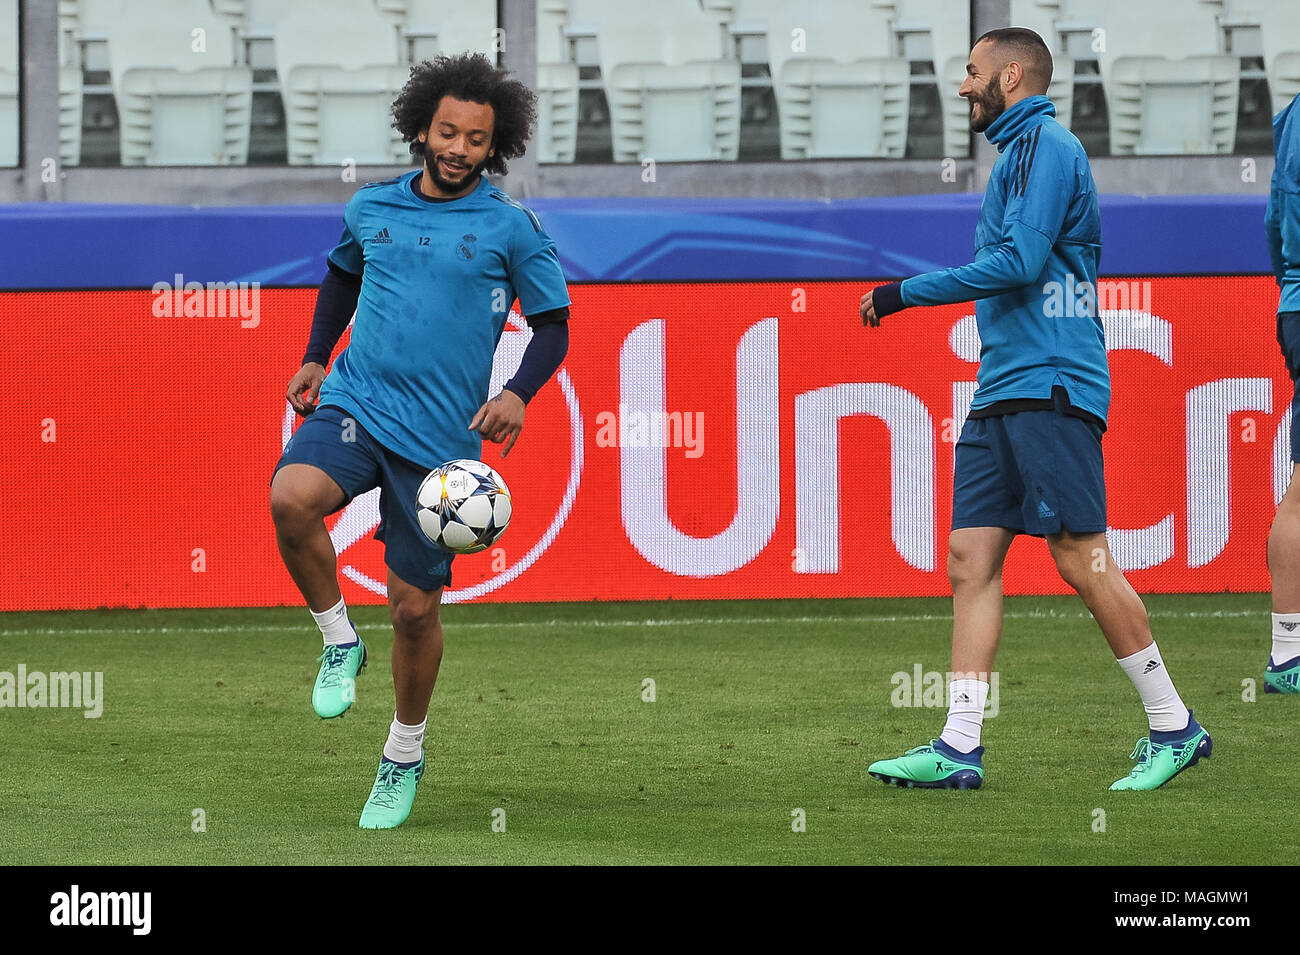 Turin, Italy, 2 April 2018. Marcelo (Real Madrid CF) during the media conference before UEFA Champions League's football match between Juventus FC and Real Madrid CF at Allianz Stadium on 3th April, 2018 in Turin, Italy. Credit: FABIO PETROSINO/Alamy Live News - Stock Image